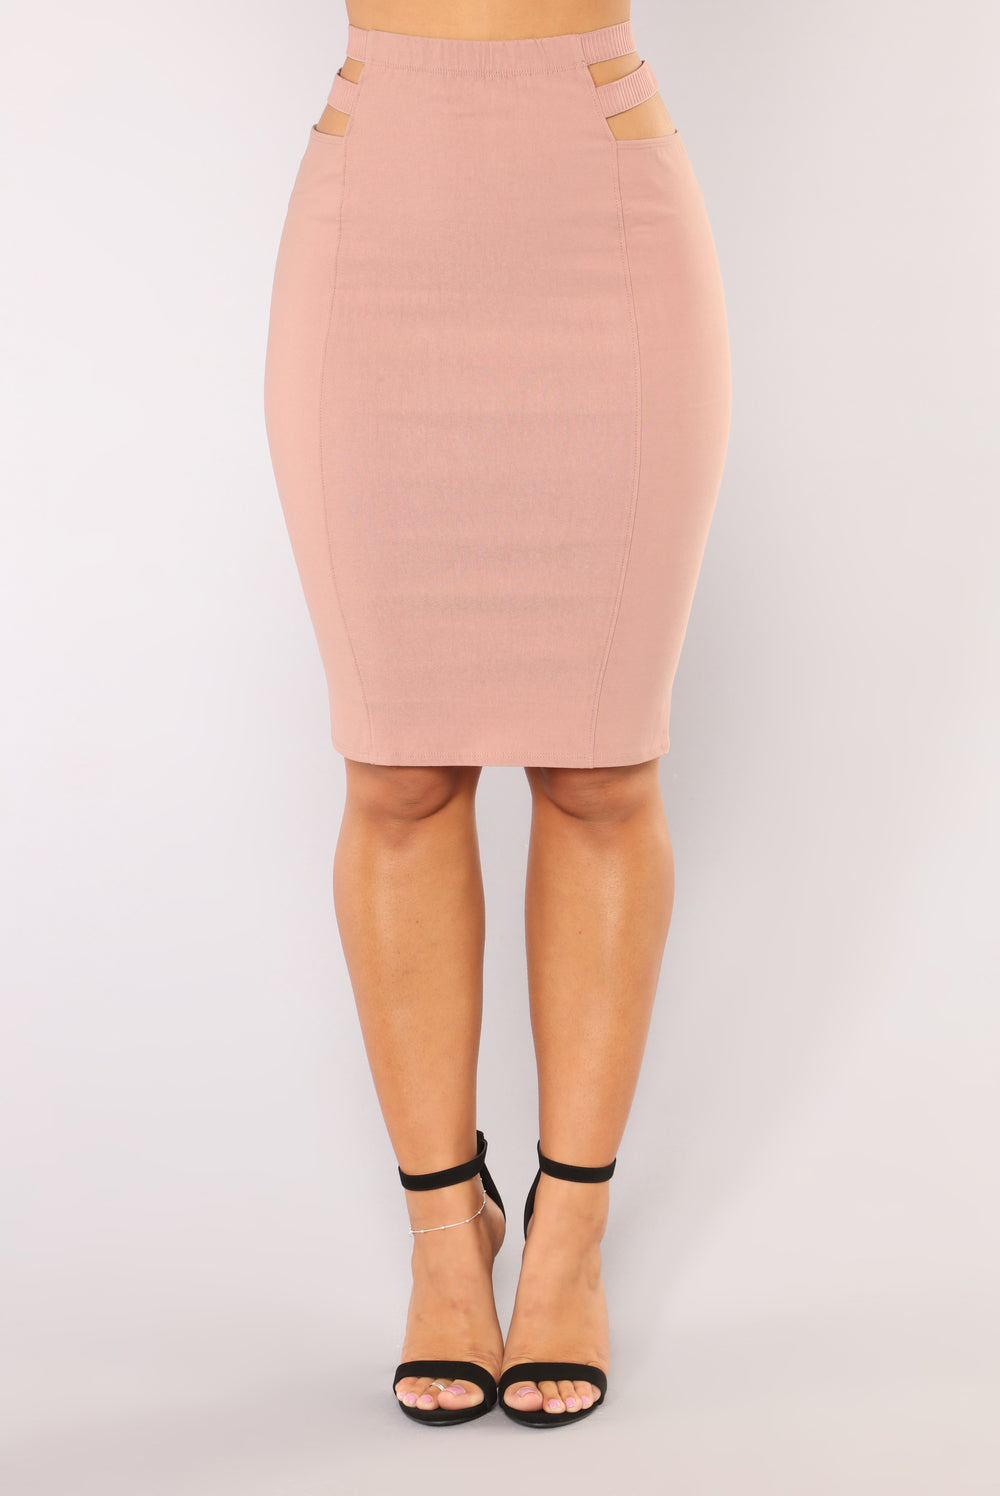 Cut It Out Skirt - Mauve